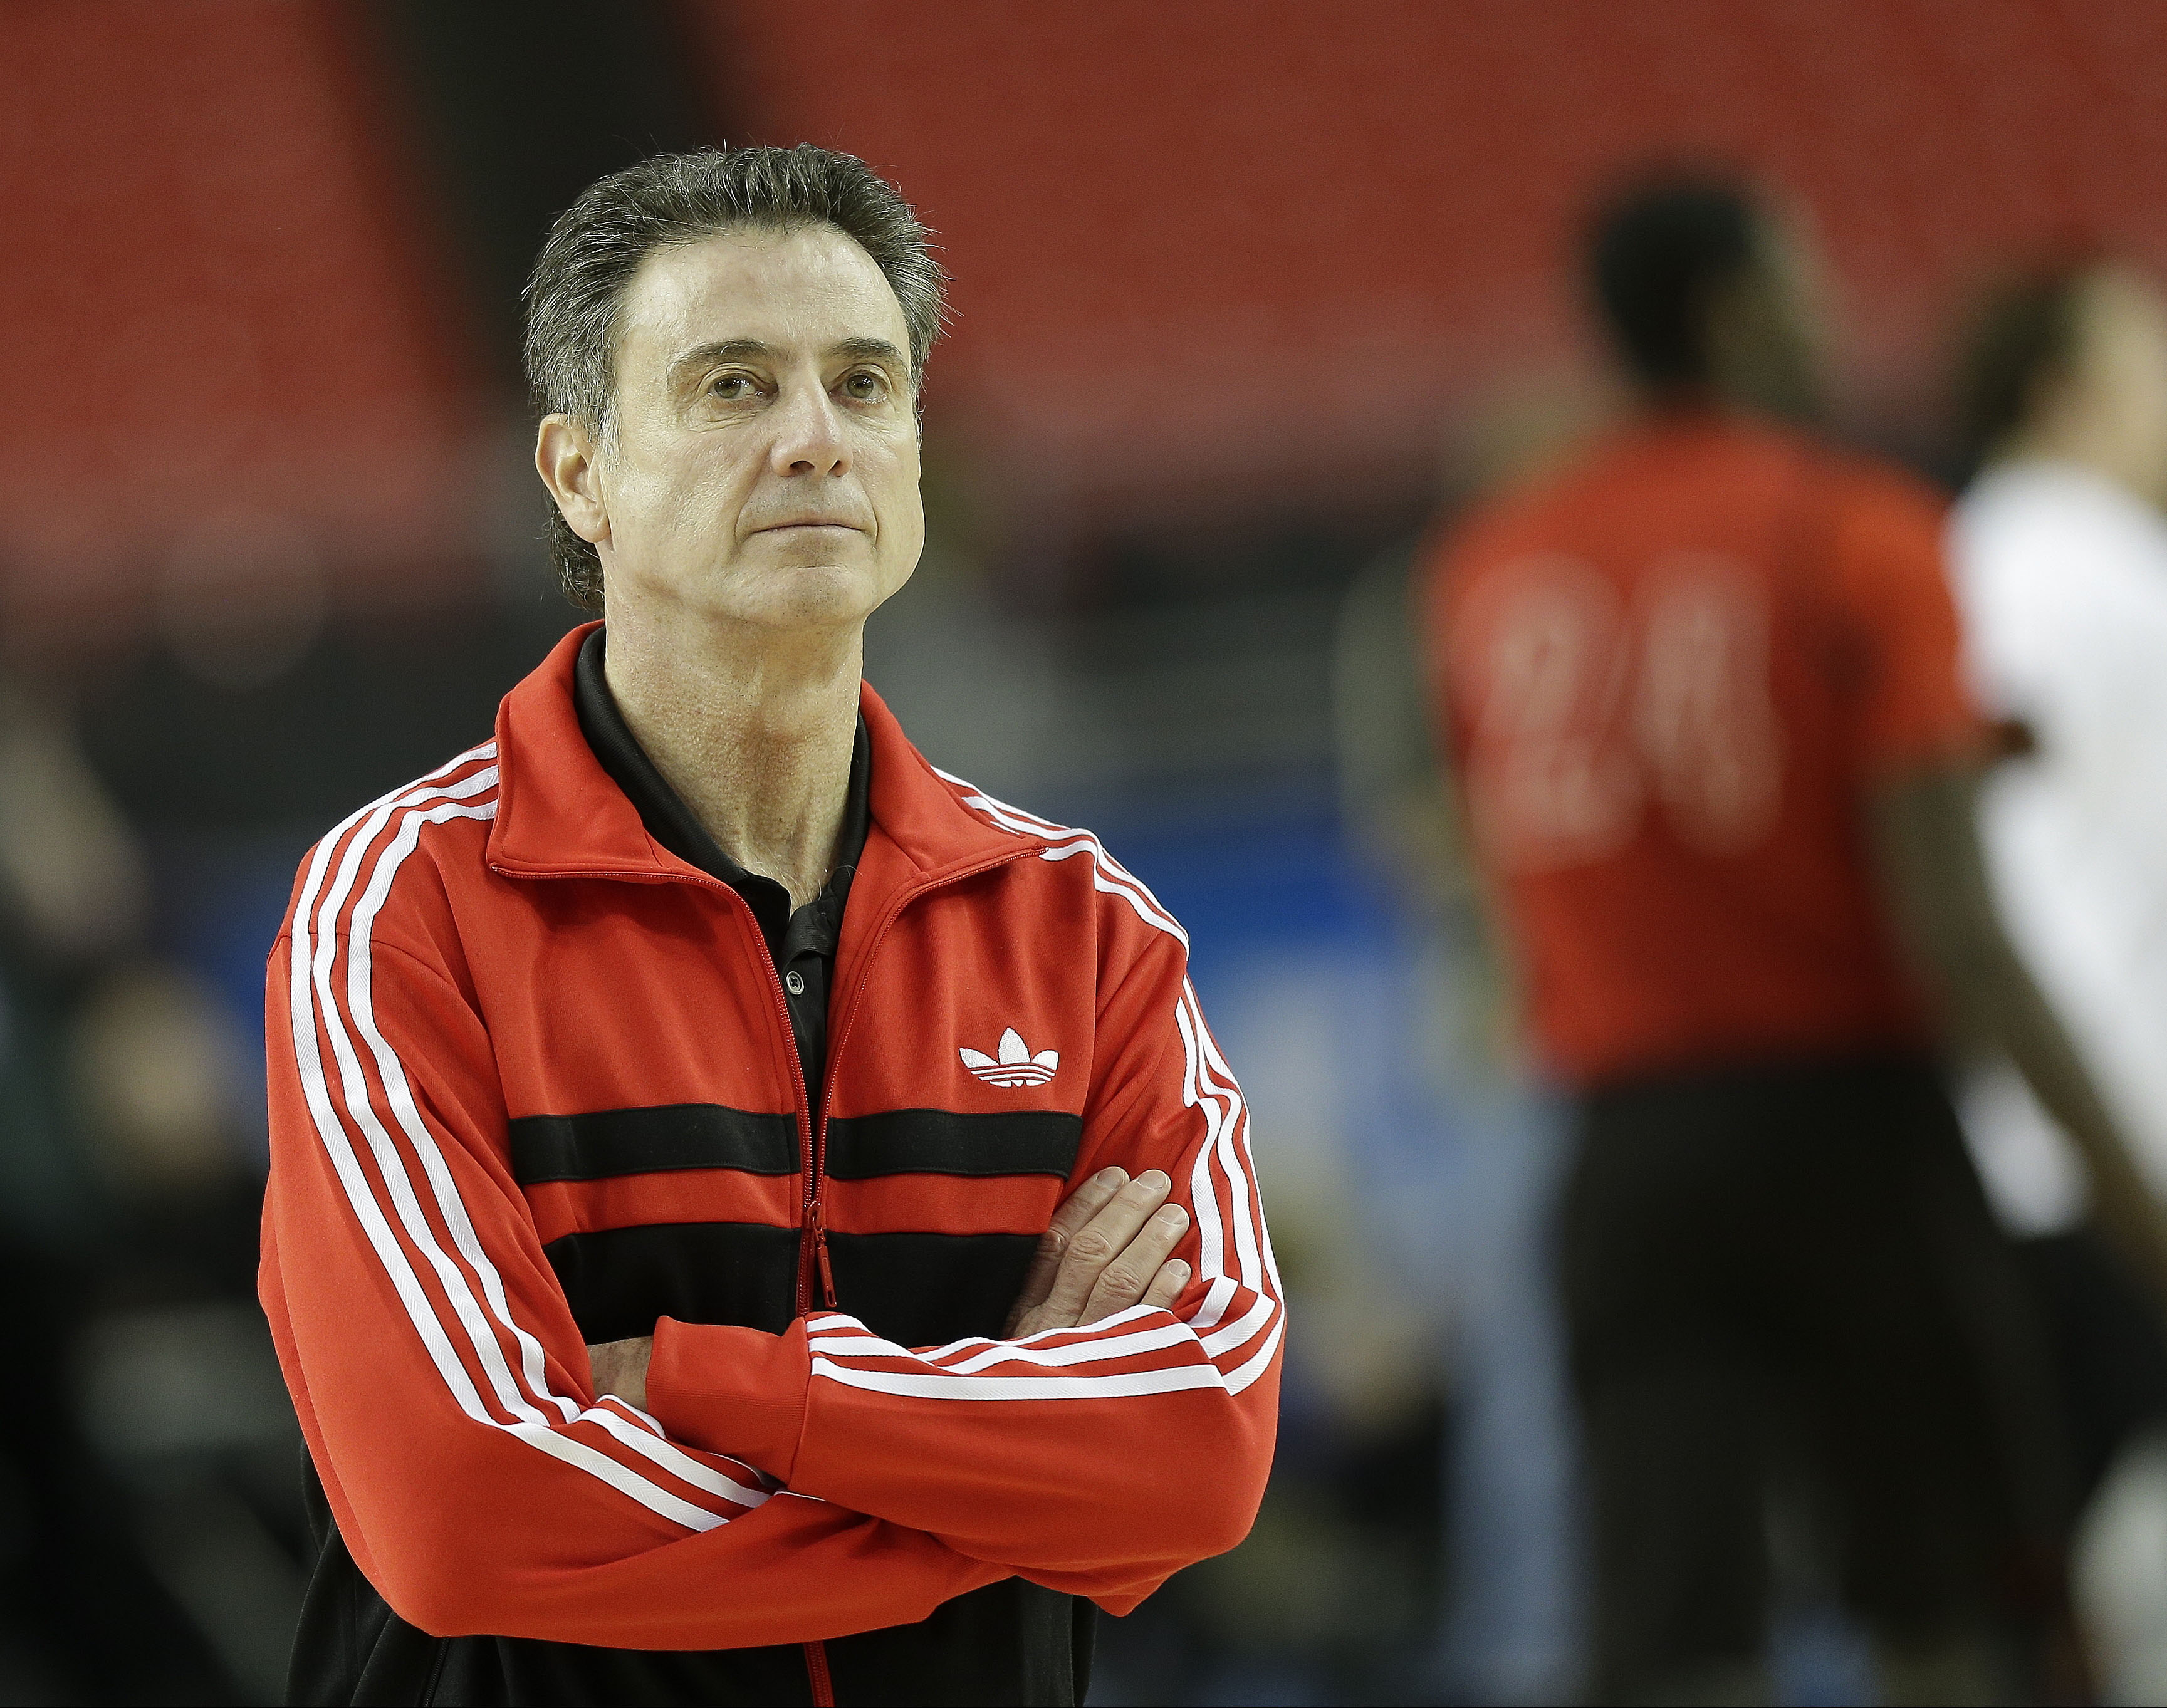 Things are looking up for Rick Pitino and the entire Louisville program. (AP)